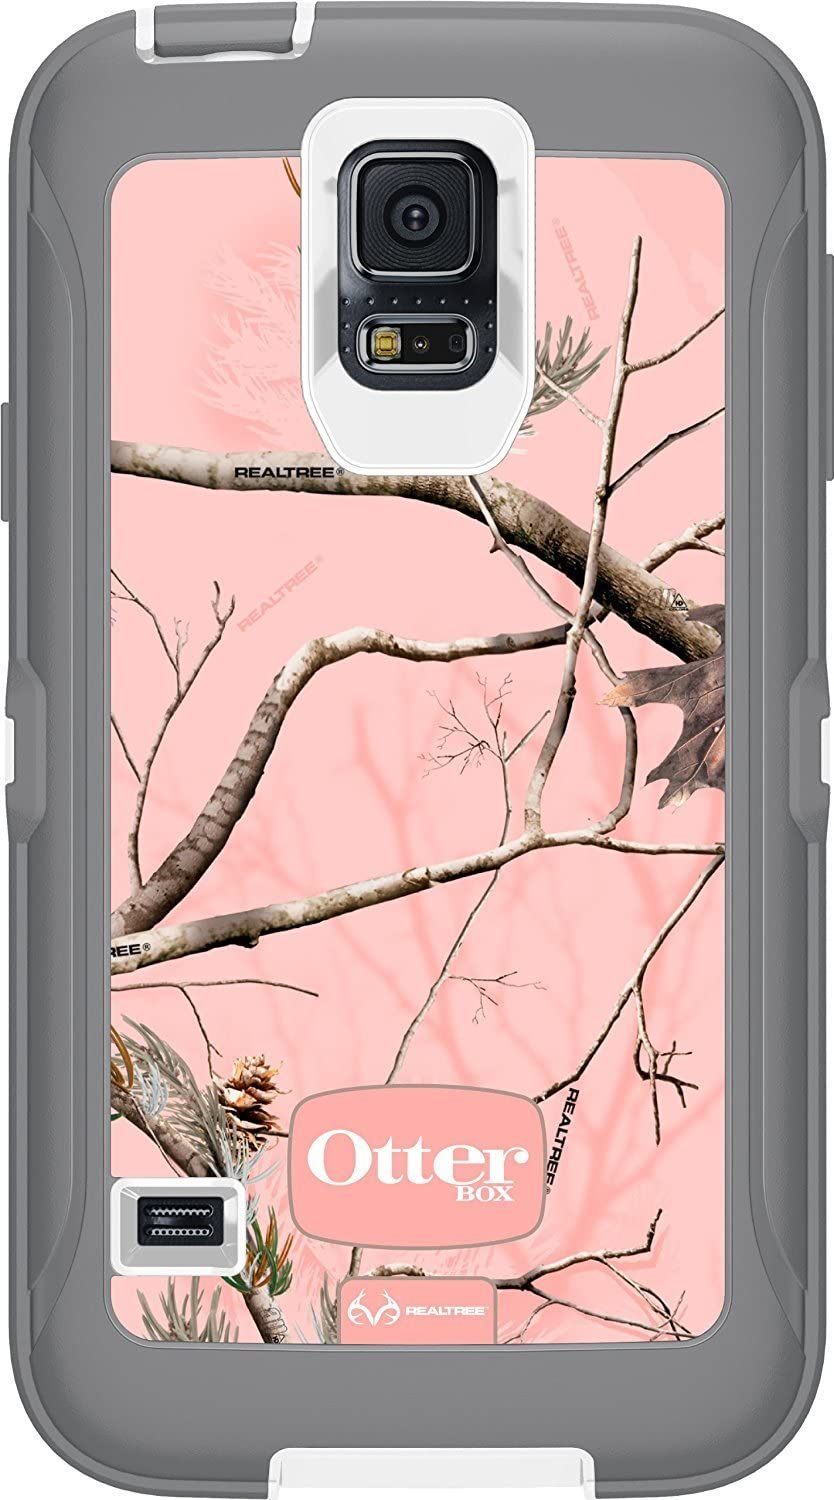 Otterbox [Defender Series] Samsung Galaxy S5 Case - Retail Packaging Protective Case for Galaxy S5- Ap Pink (White/Gunmetal Grey Ap Pink)